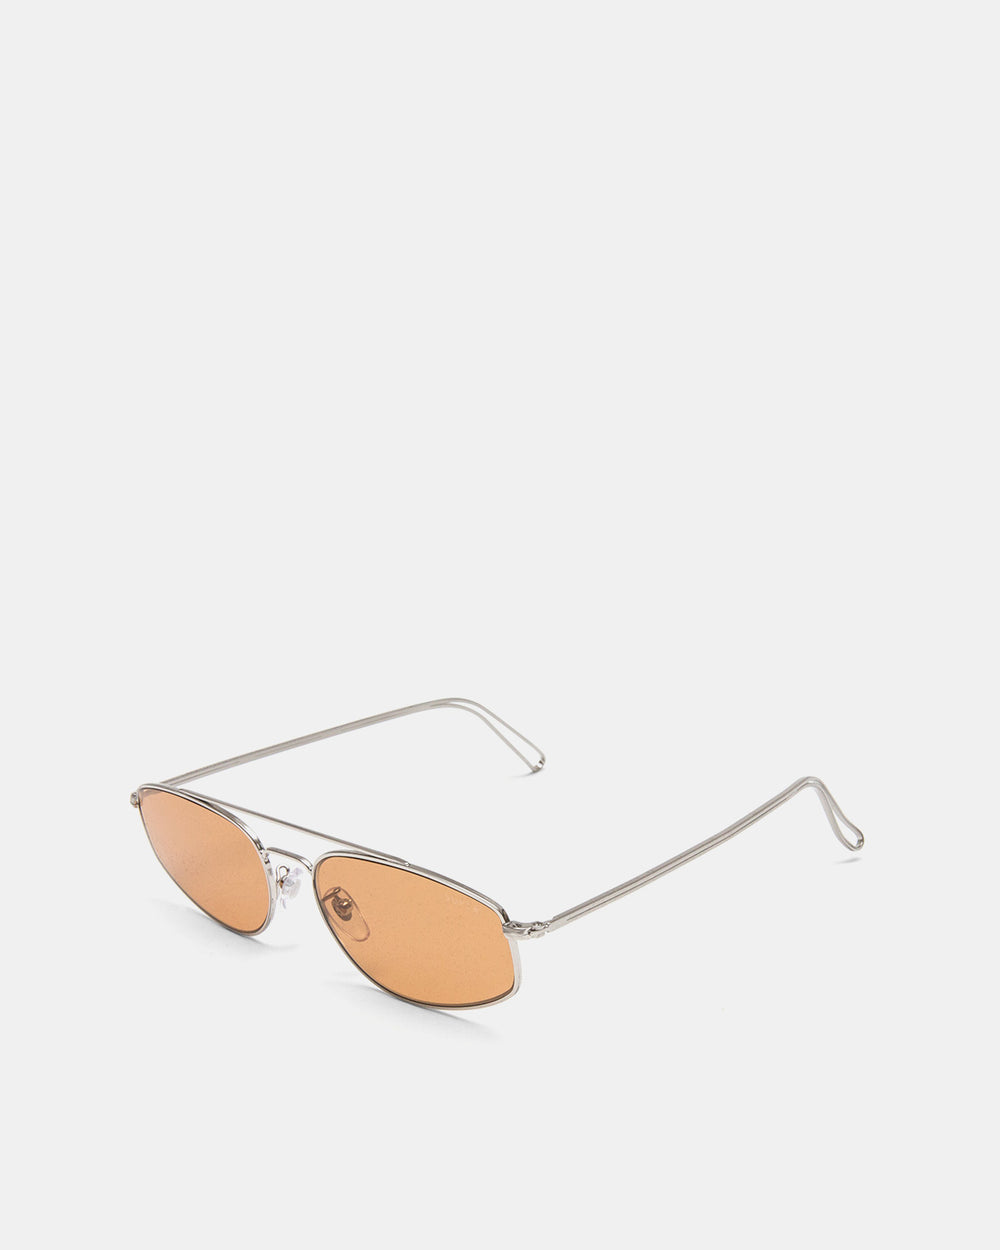 SUPER - Tema Sunglasses (Smokey Brown)